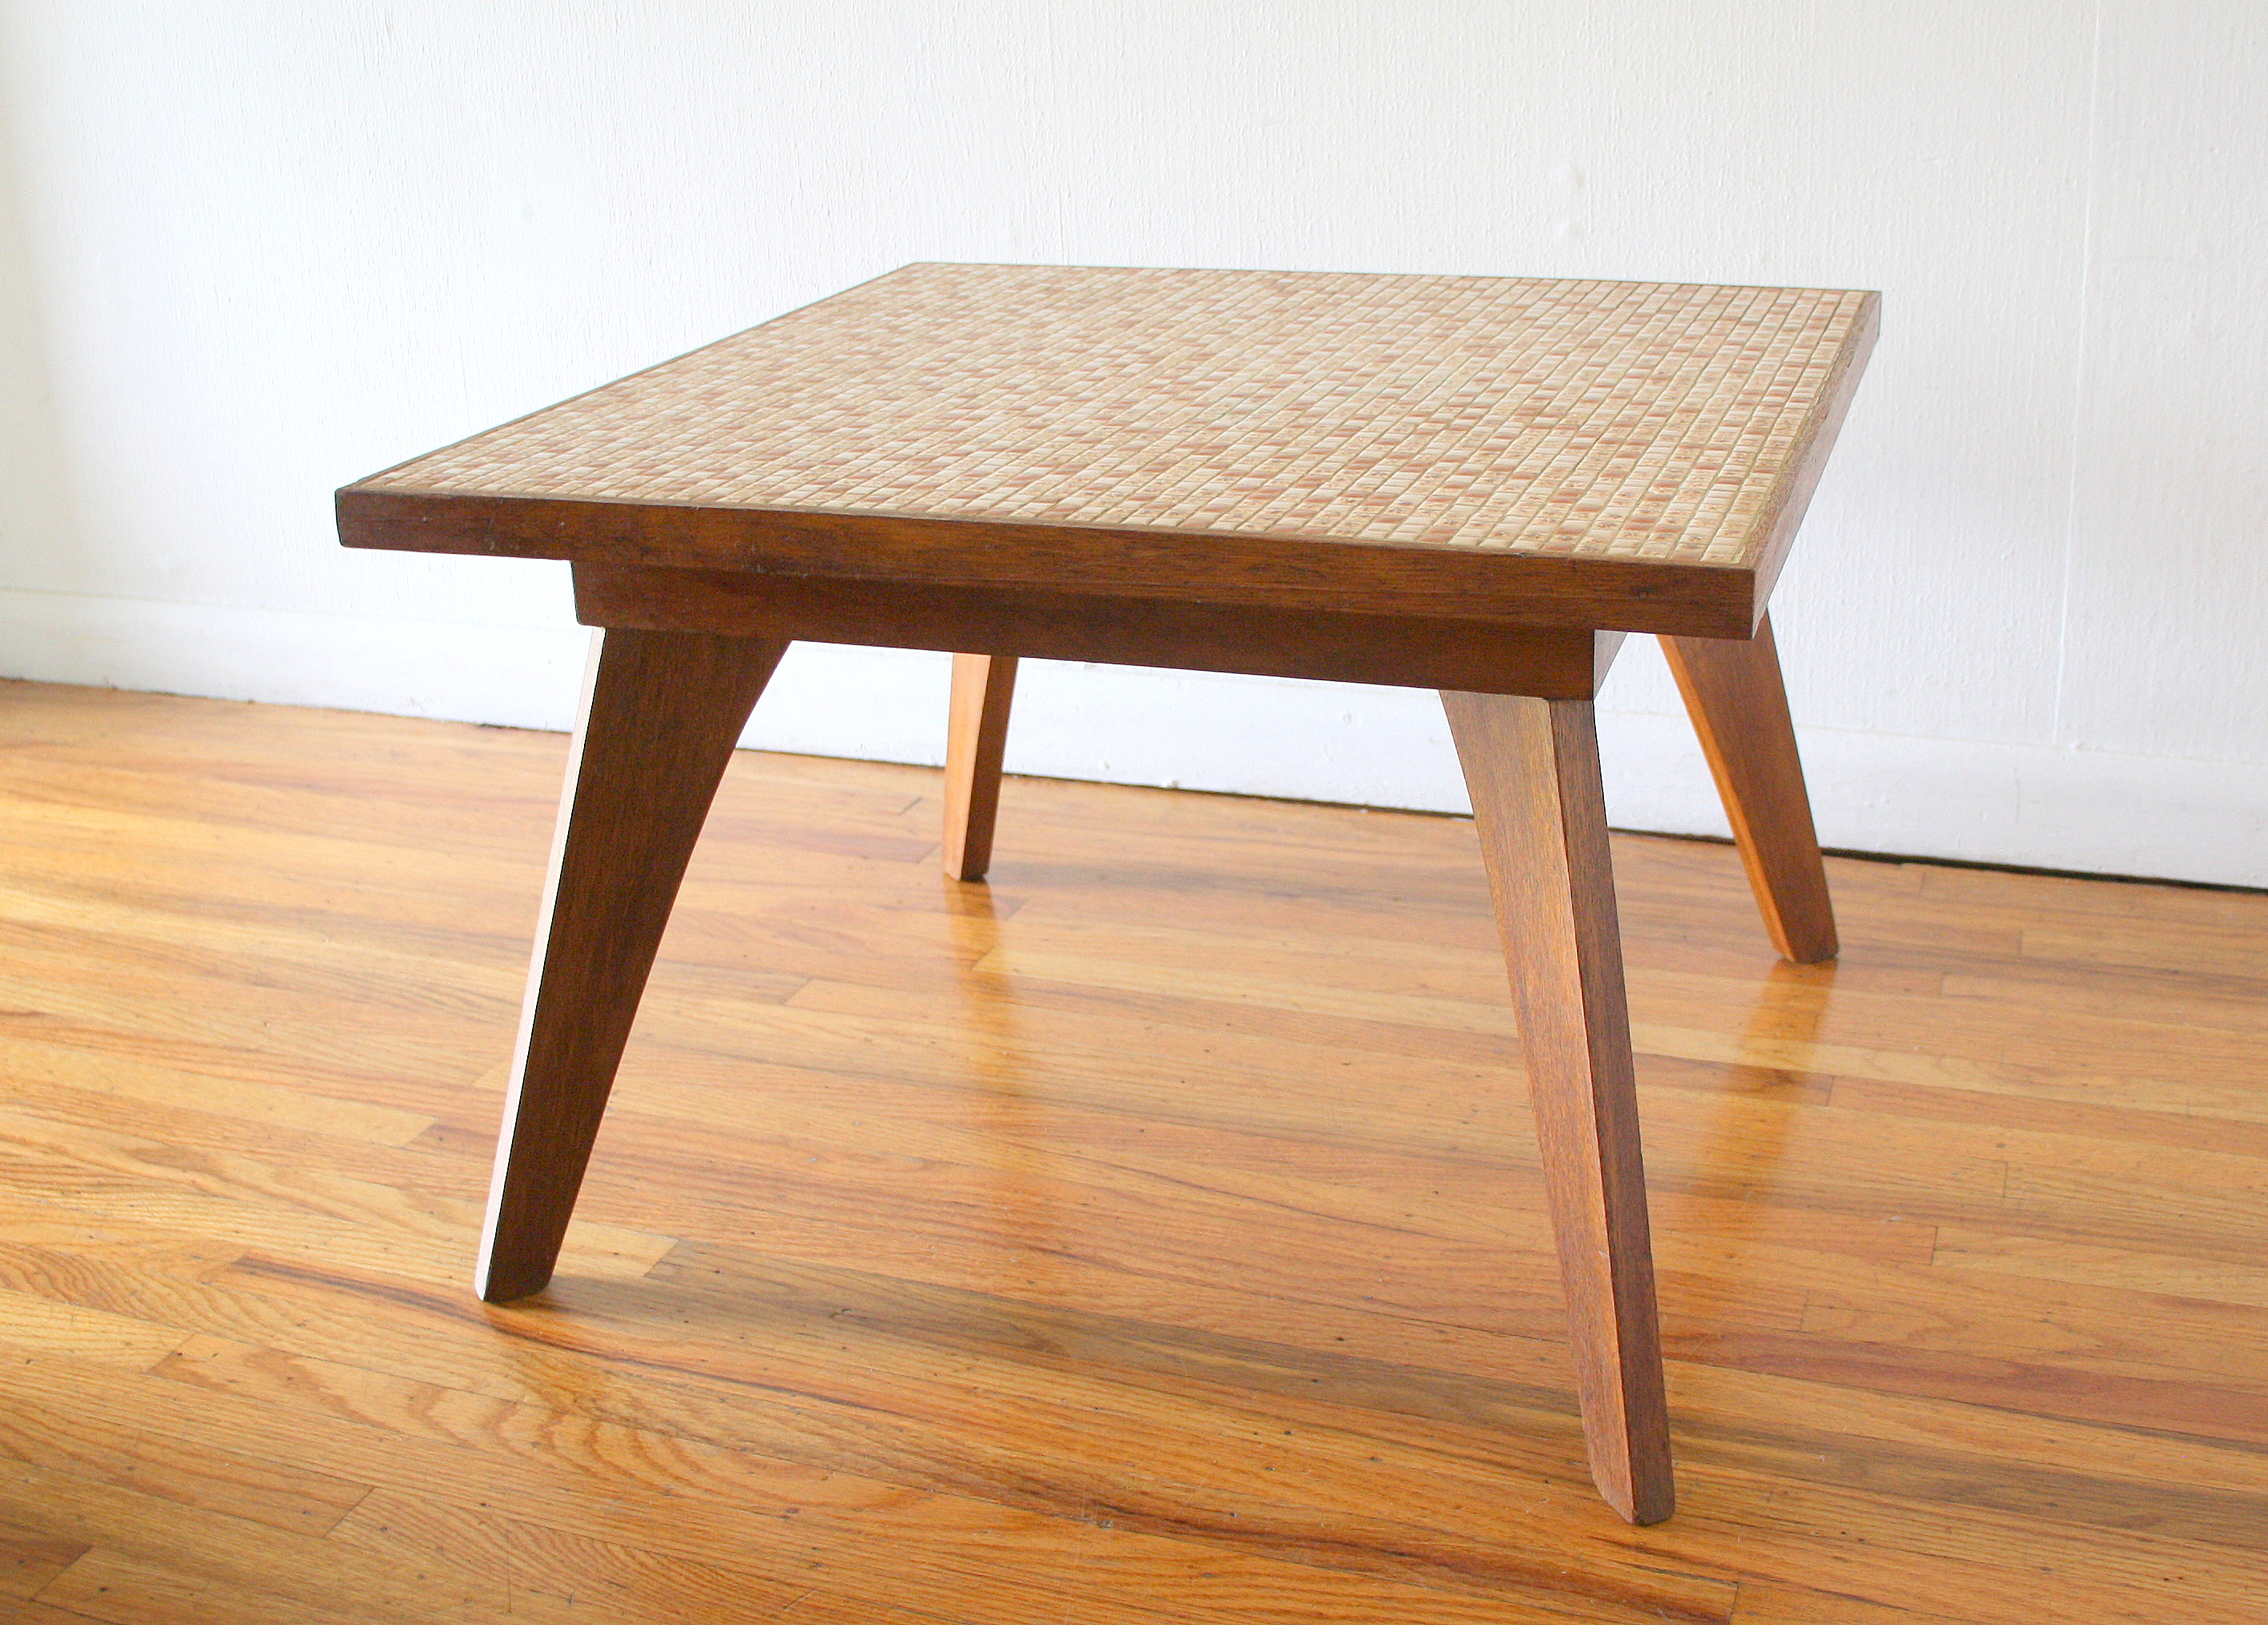 Mcm square tile table with splayed legs 1